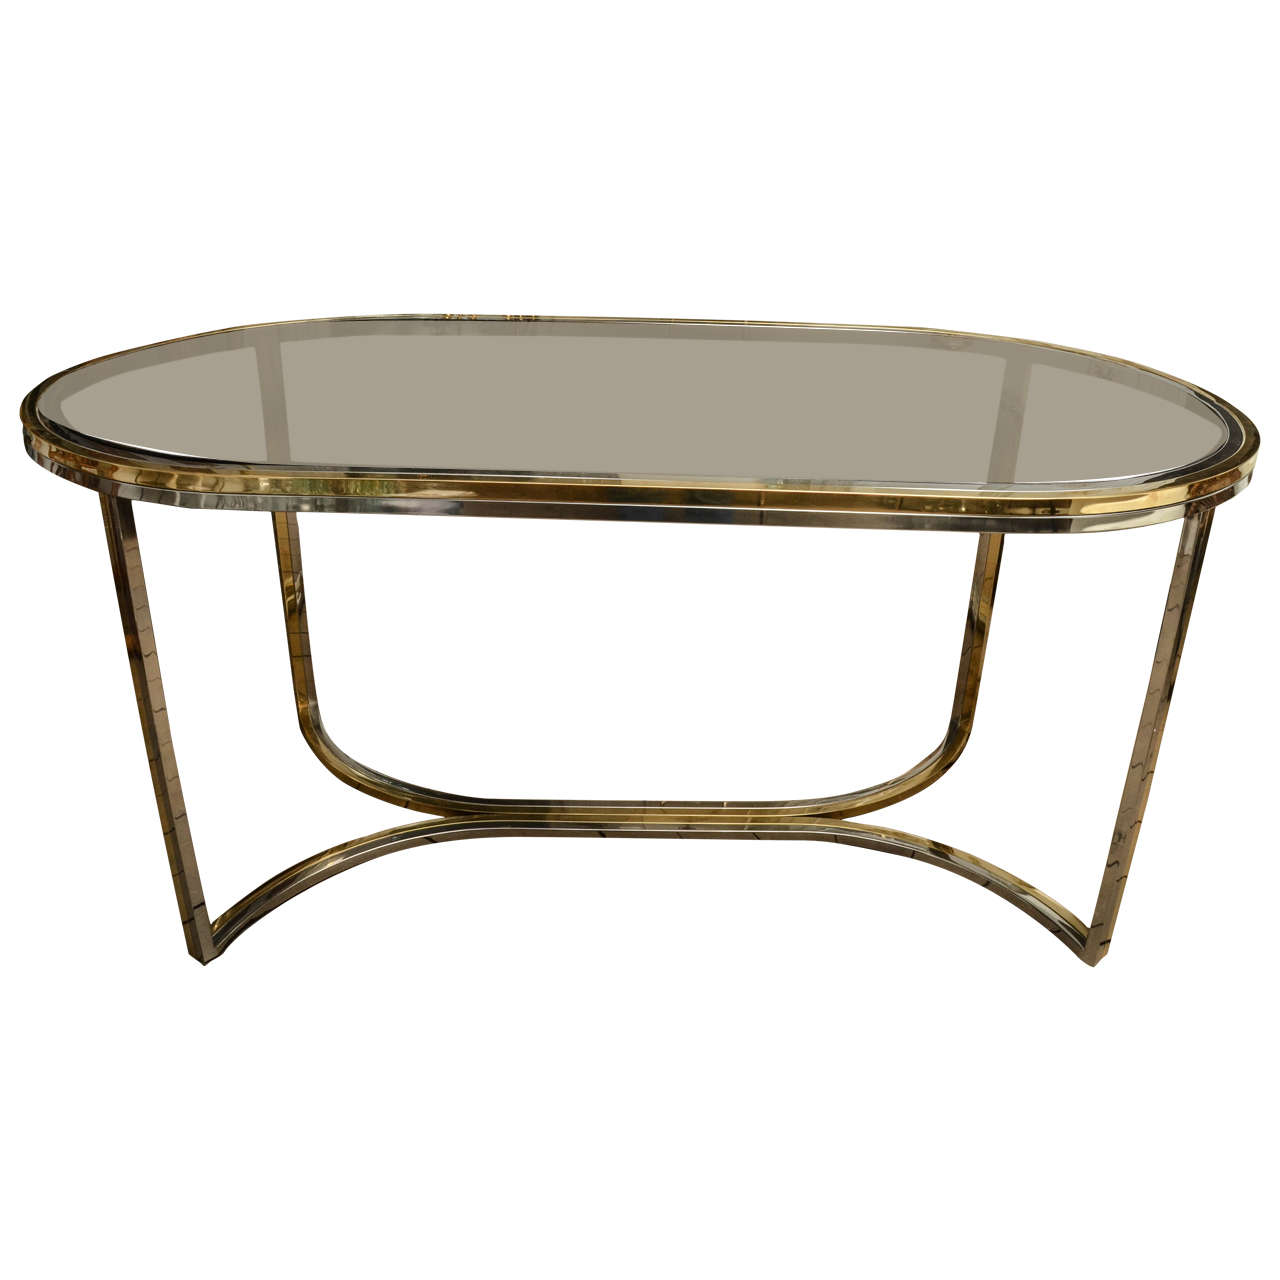 Chrome and brass oval dining table with smoked glass top for The best dining tables